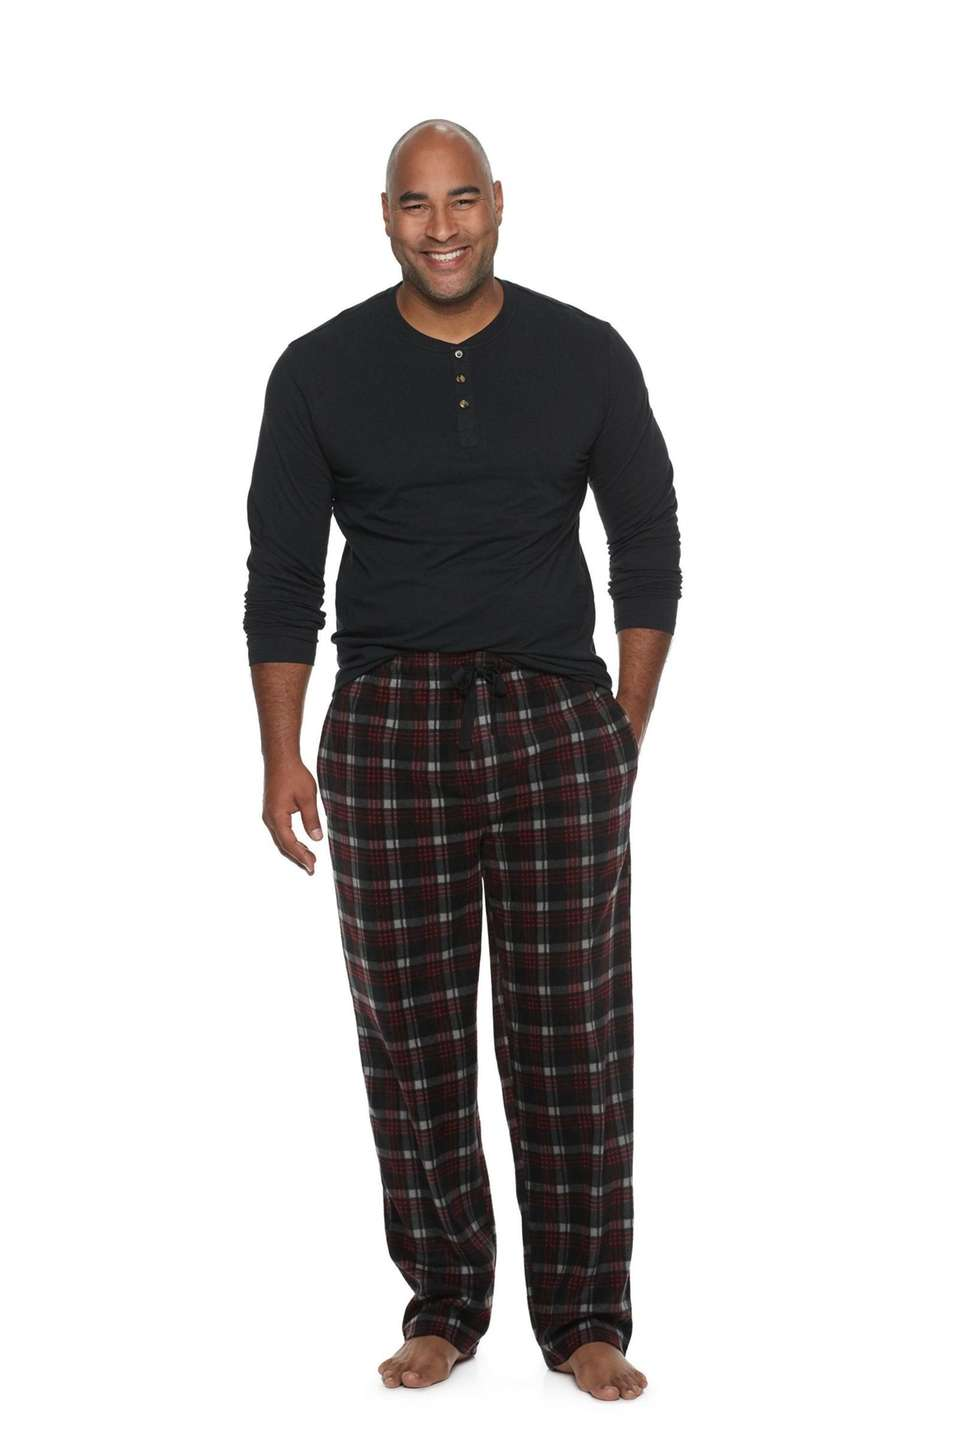 Stay comfortable and warm while sleeping or lounging